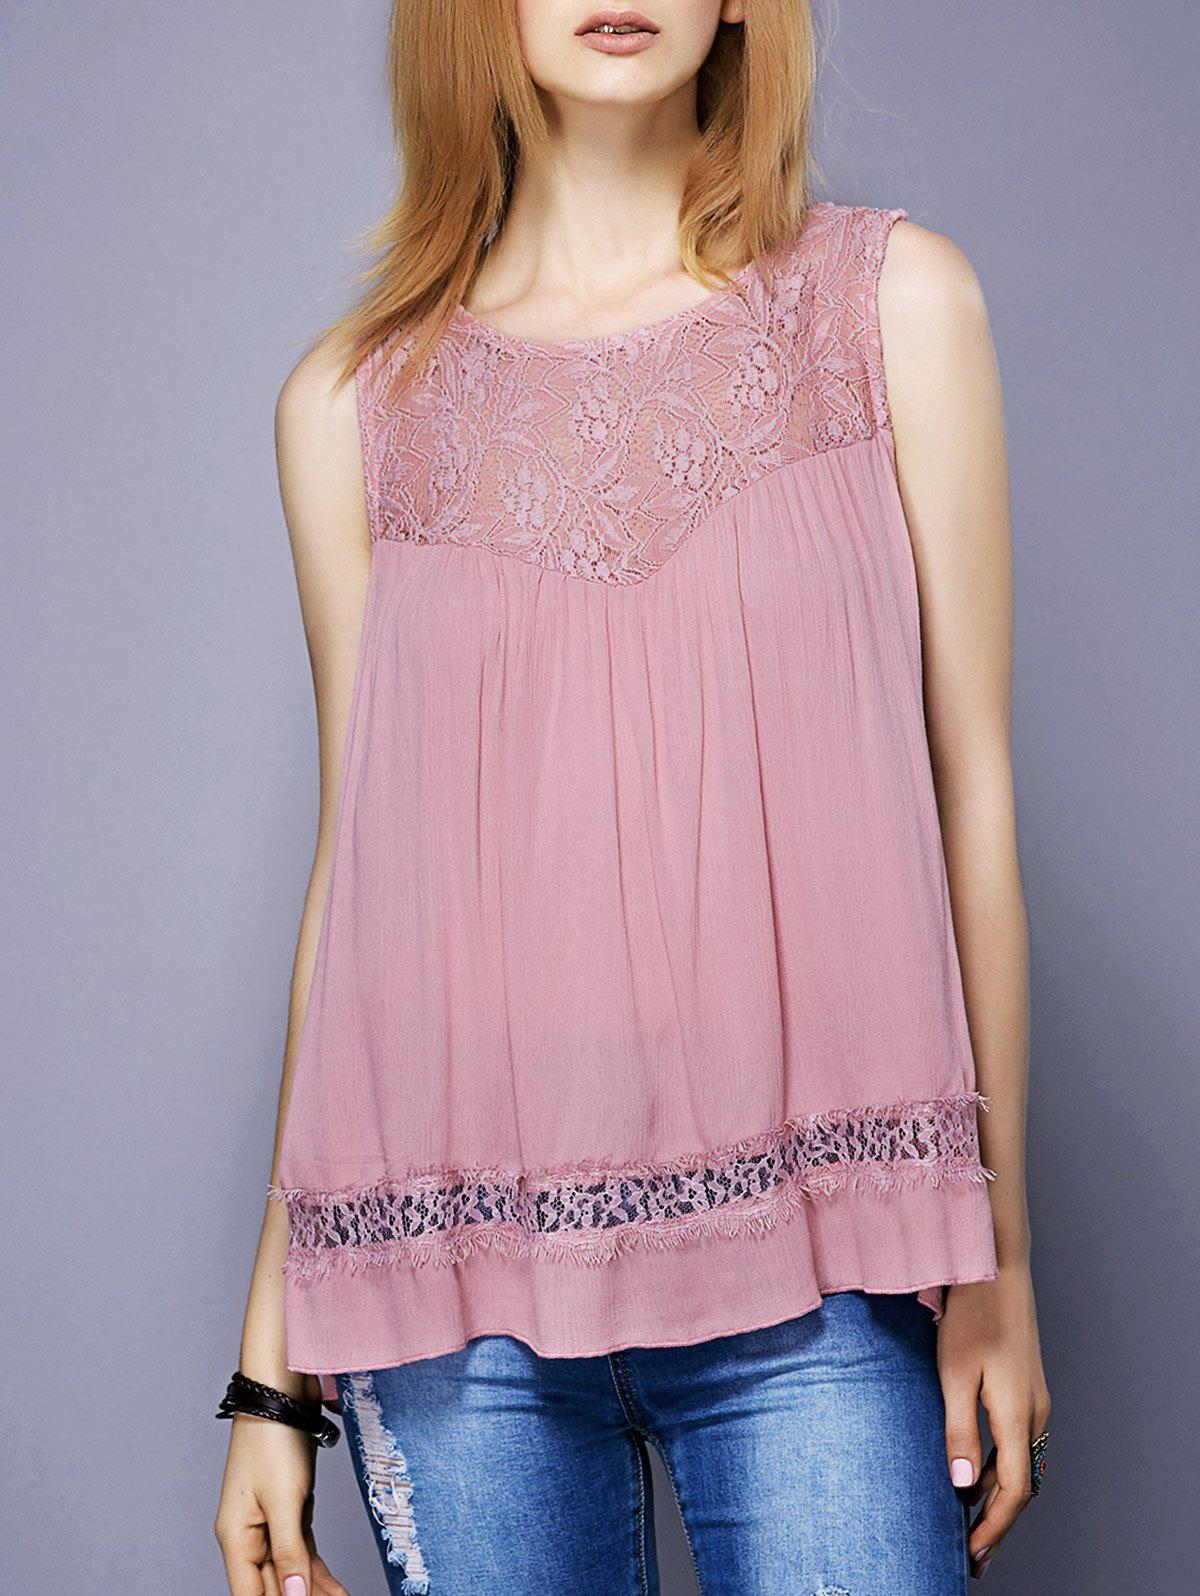 Sweet Women's Round Neck Lace Spliced Slit Tank Top - PINK L